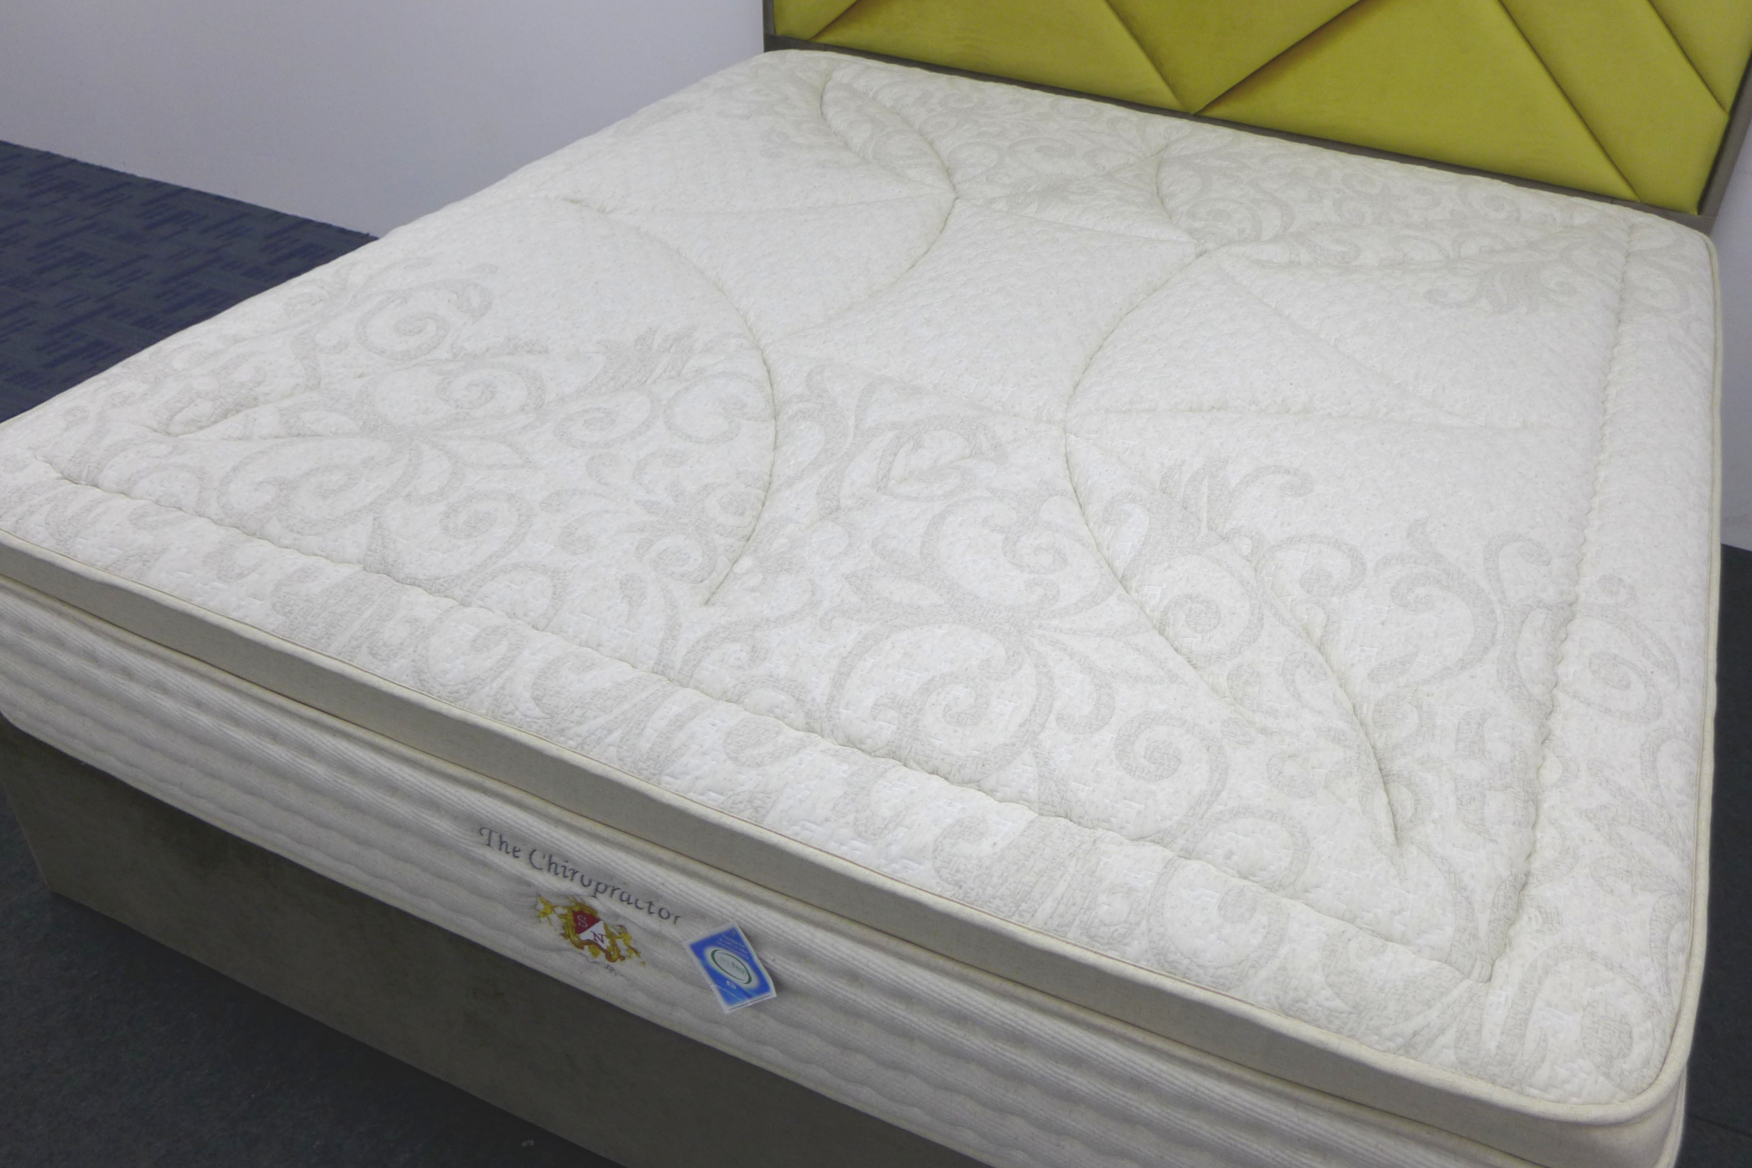 pain the chiropractor by best room back sleep zdesign box reviews rated one three spring and organic mattress bed challenge home chiroprators for luxury firm at bad recommended highly week saatva